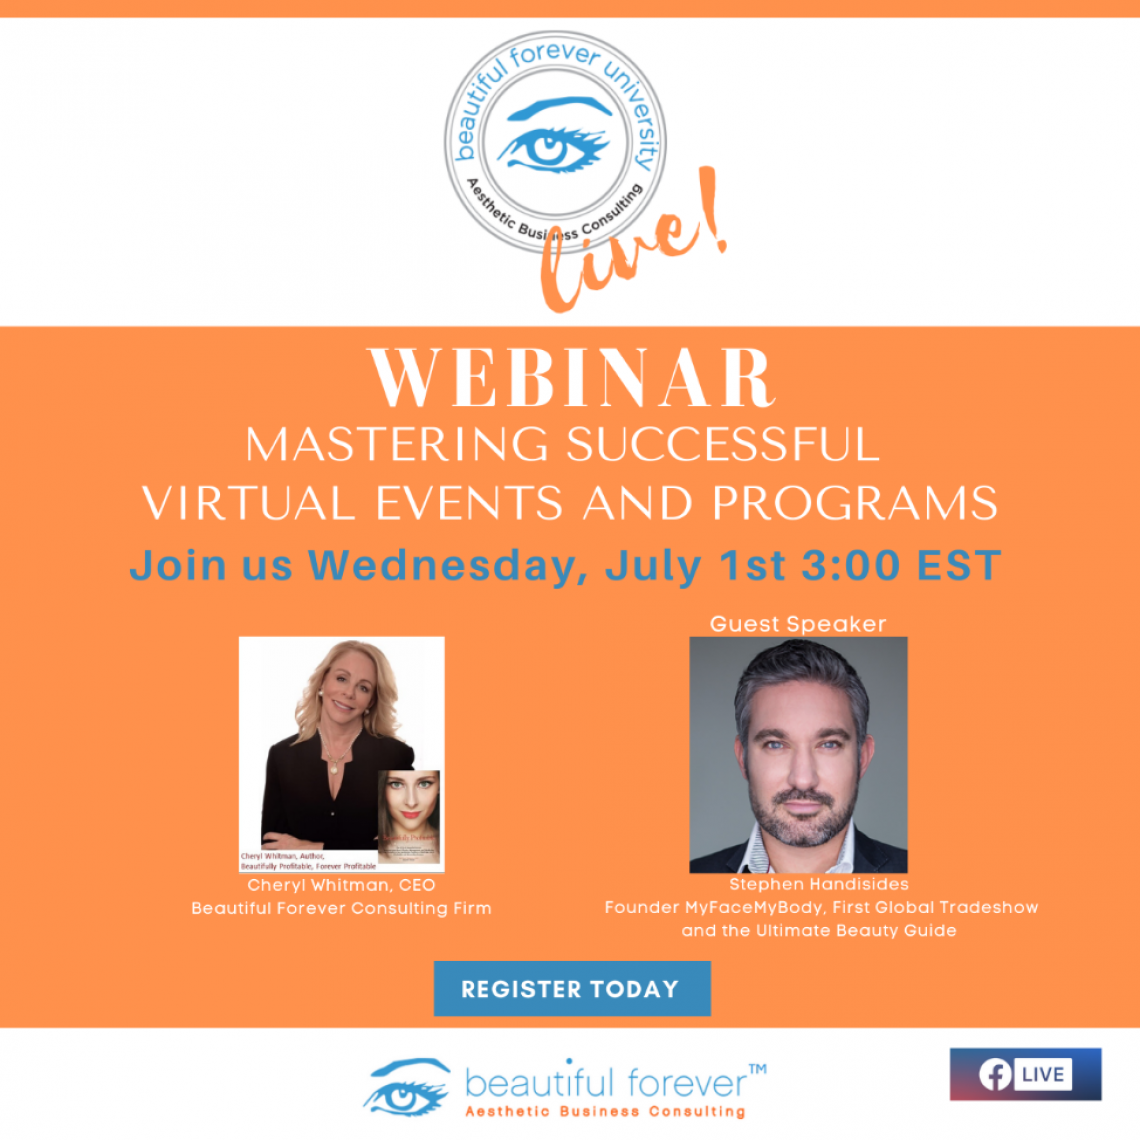 Mastering Successful Virtual Events & Programs w Cheryl Whitman and Stephen Handisides, Founder My Face My Body